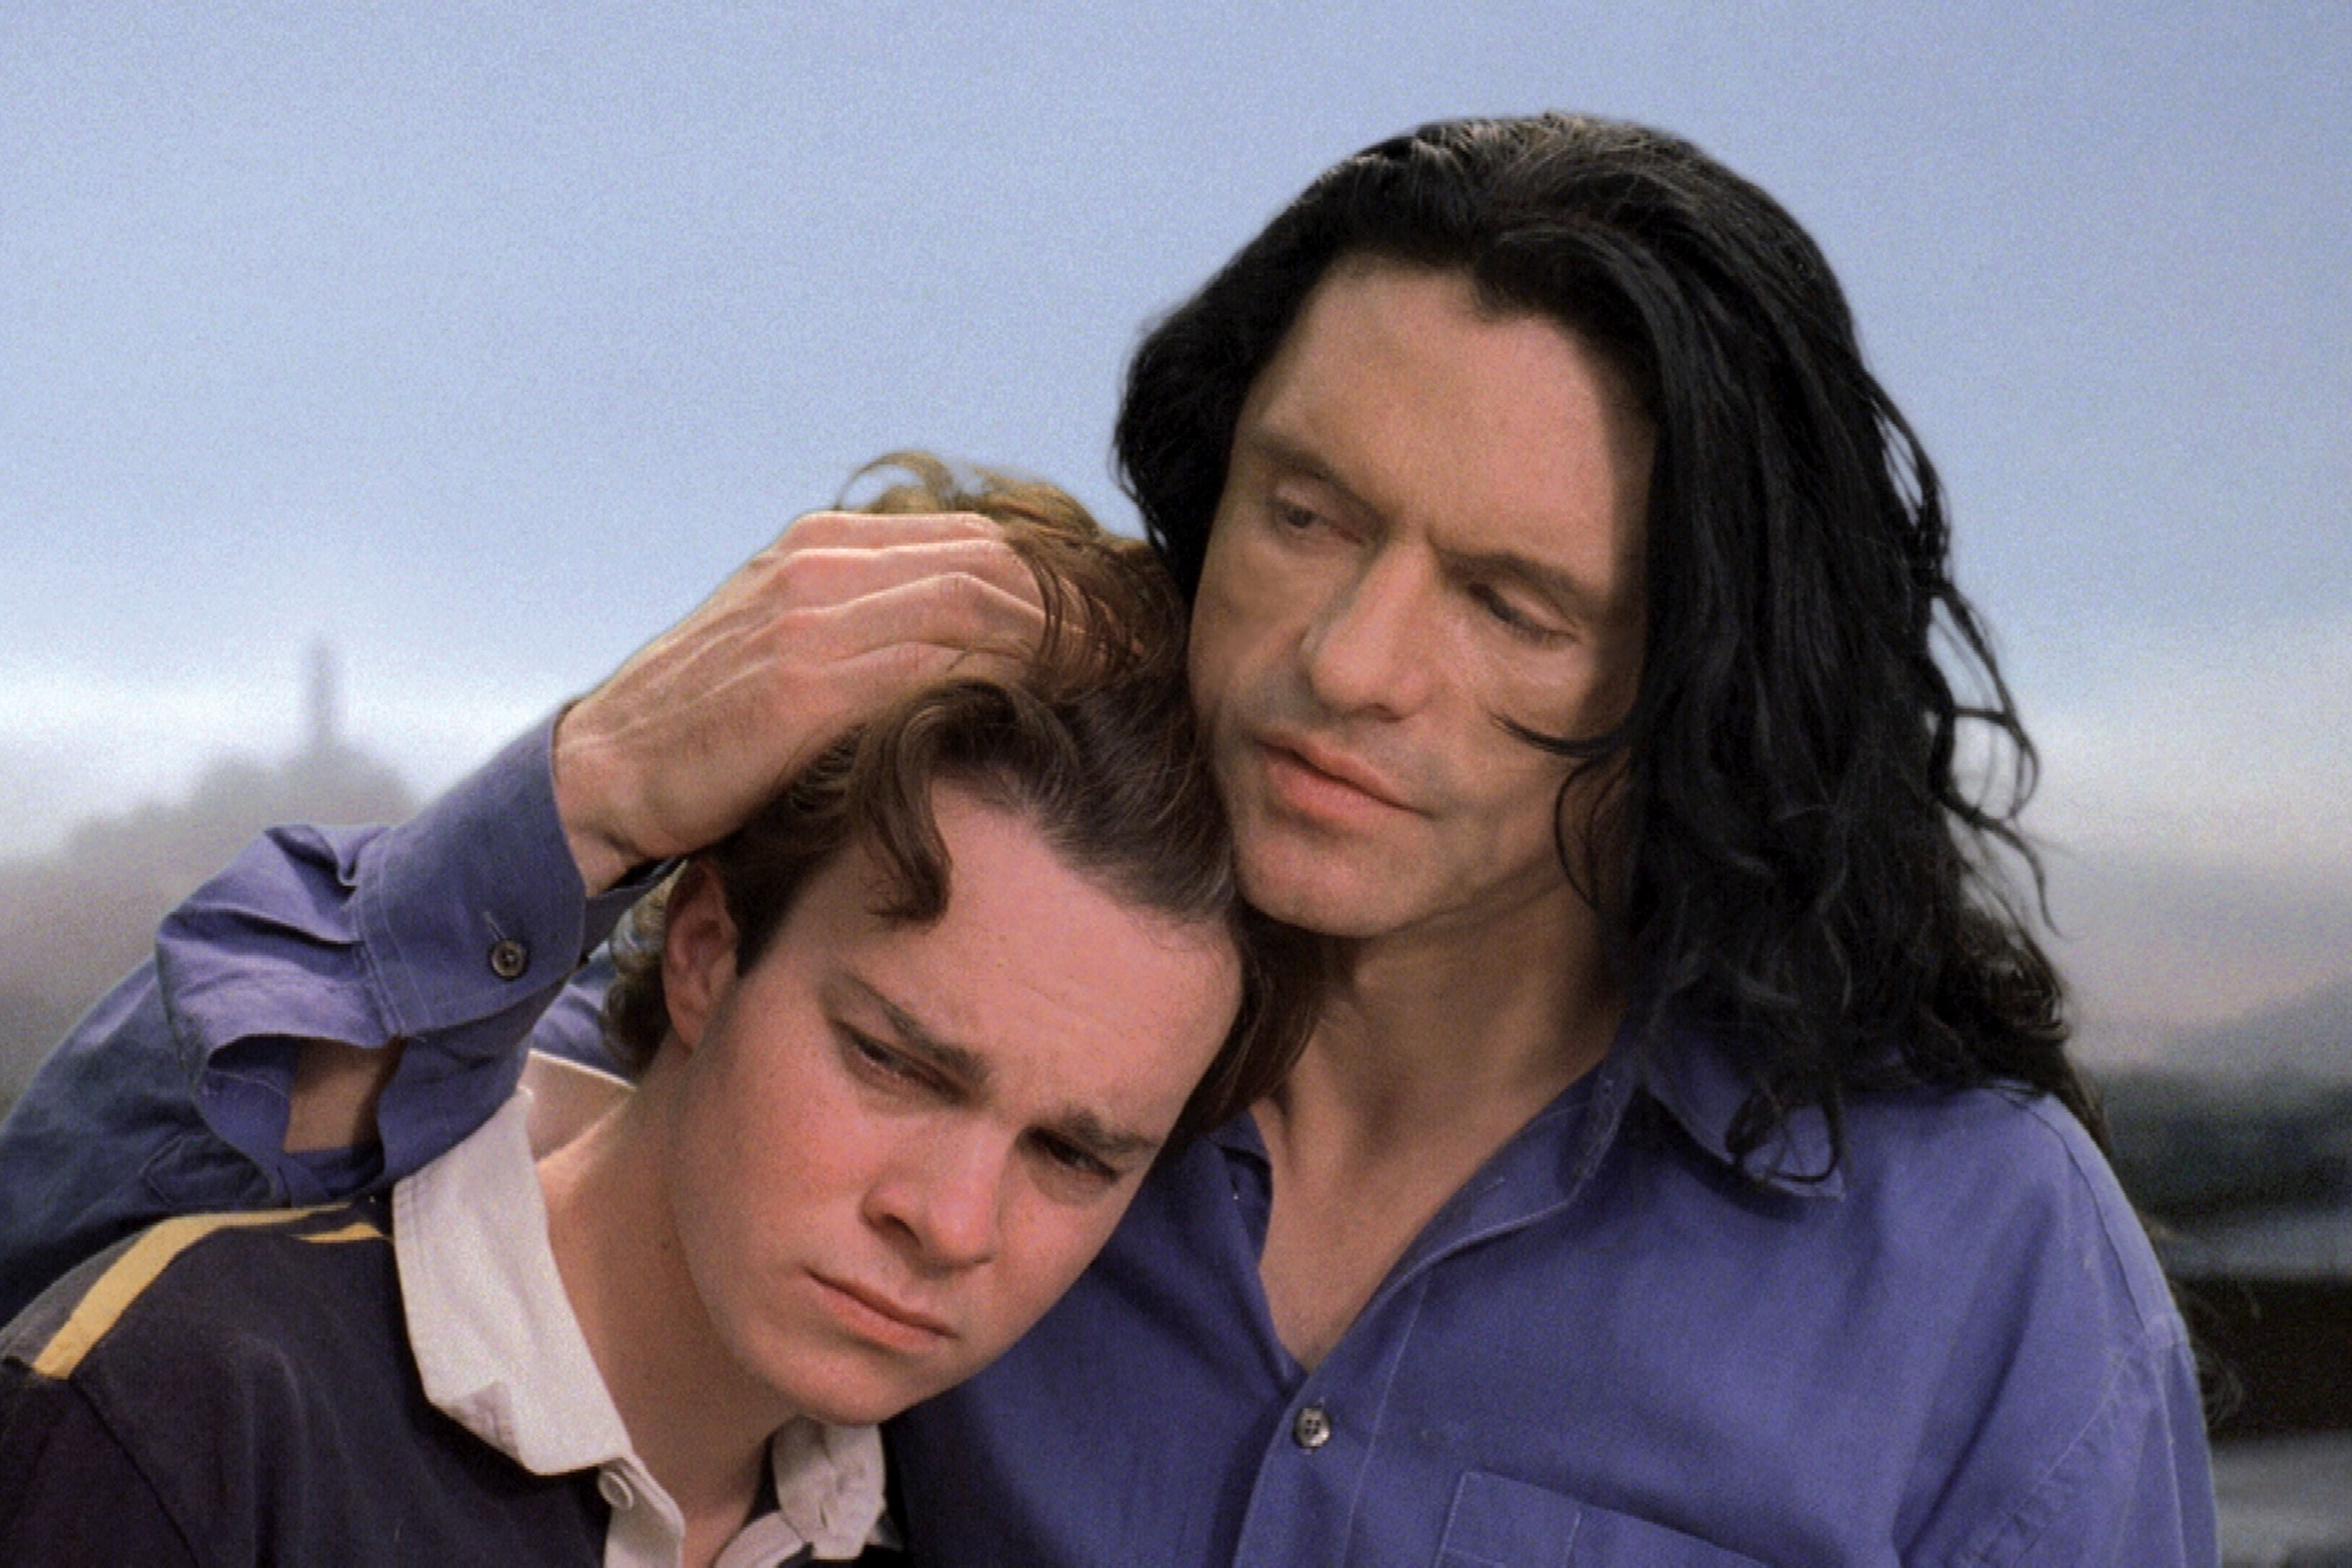 Cult classic The Room is finally getting a wide theatrical release